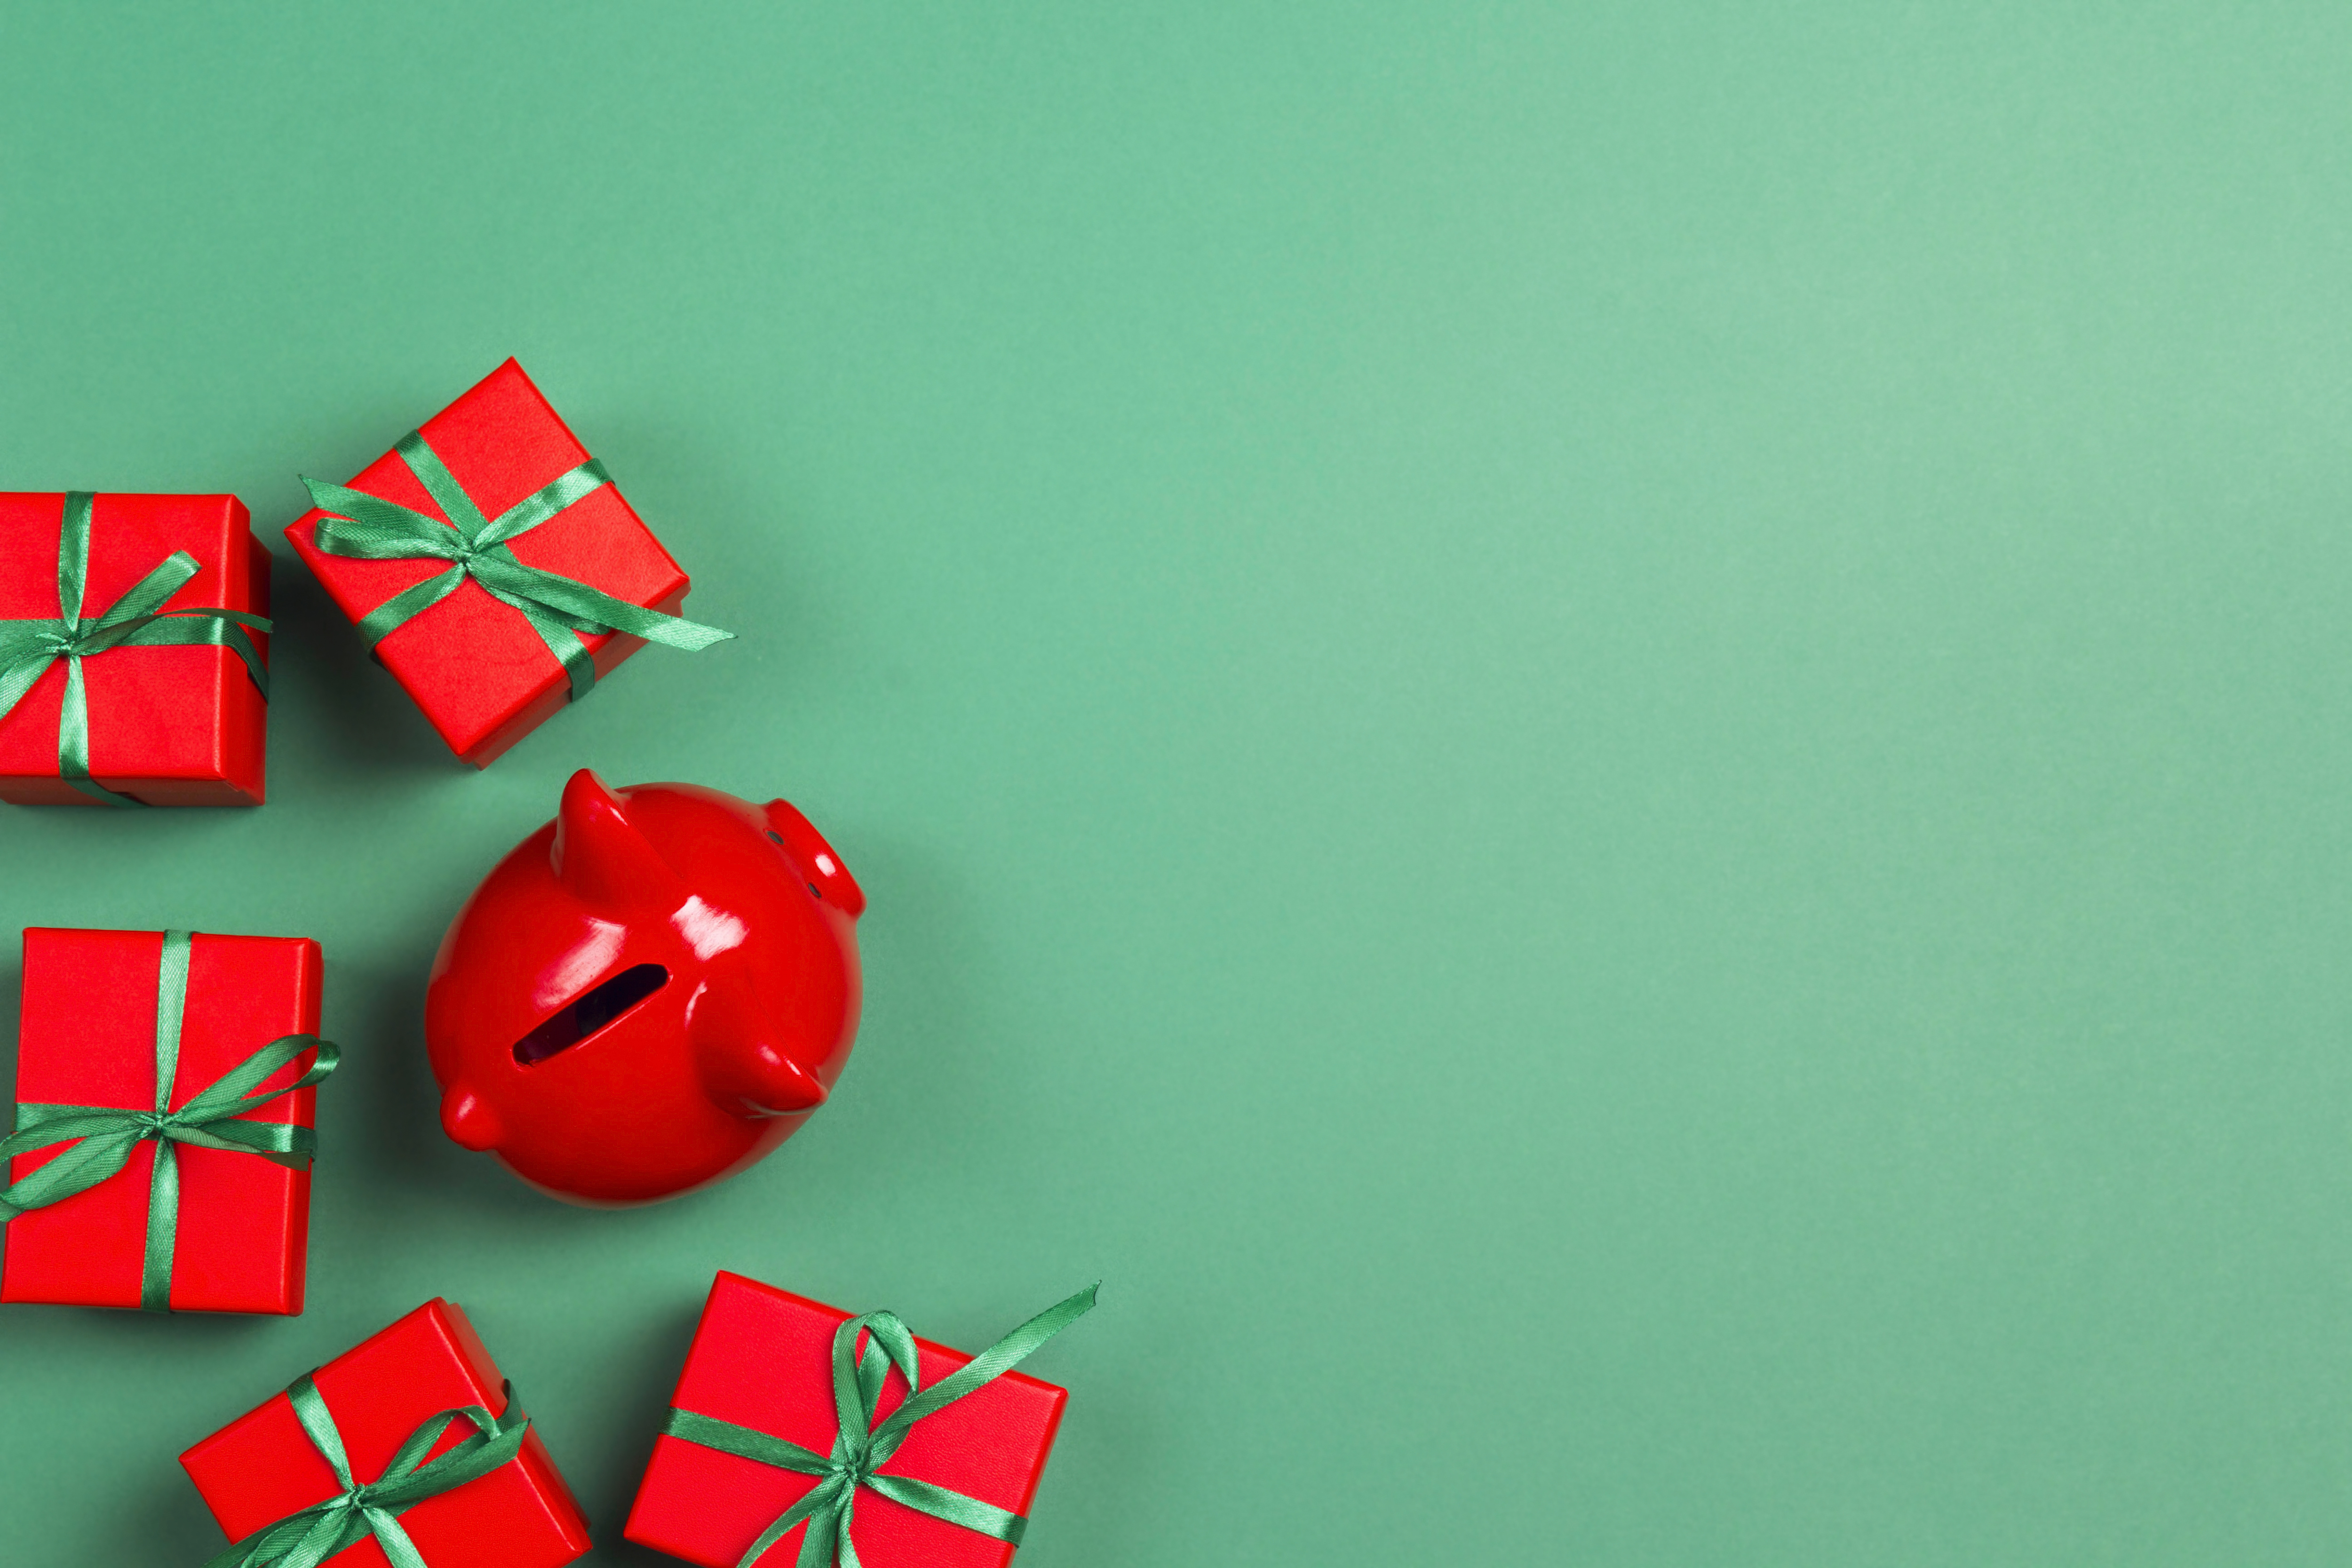 Piggy bank and christmas gifts on green background. Saving money and buying Xmas gifts. Top view with copy space.